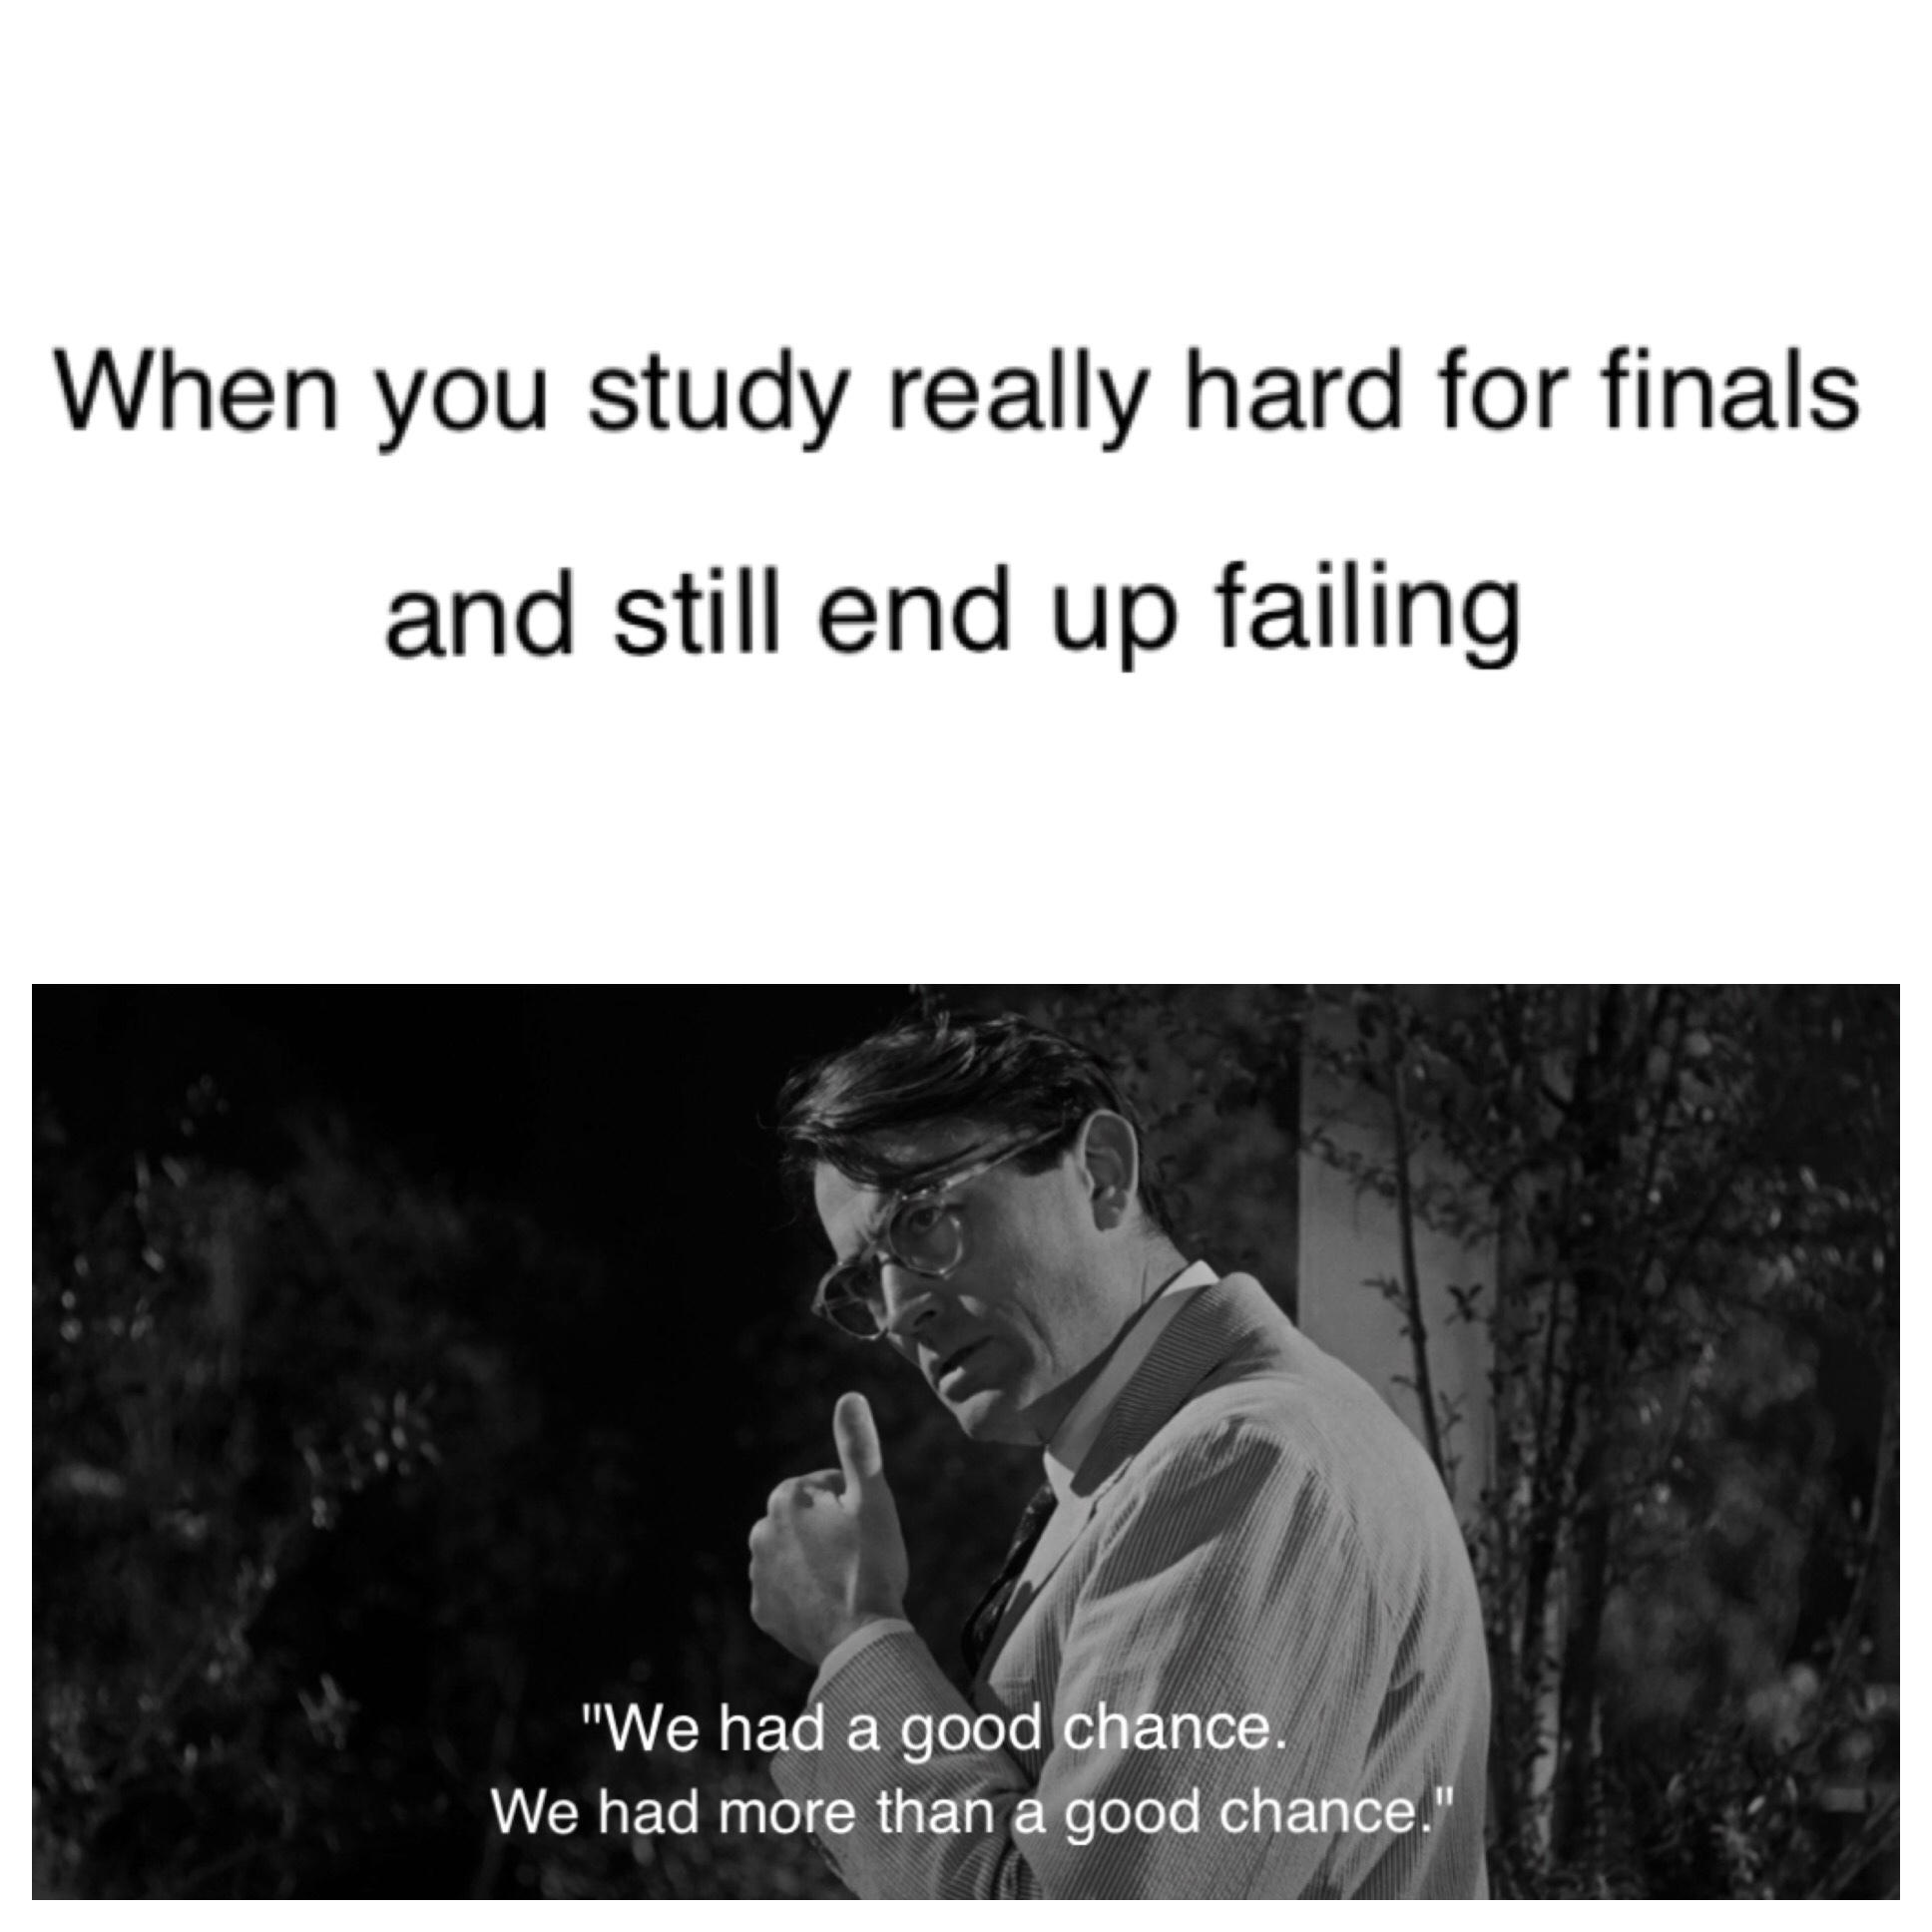 I'm so happy finals are over - meme